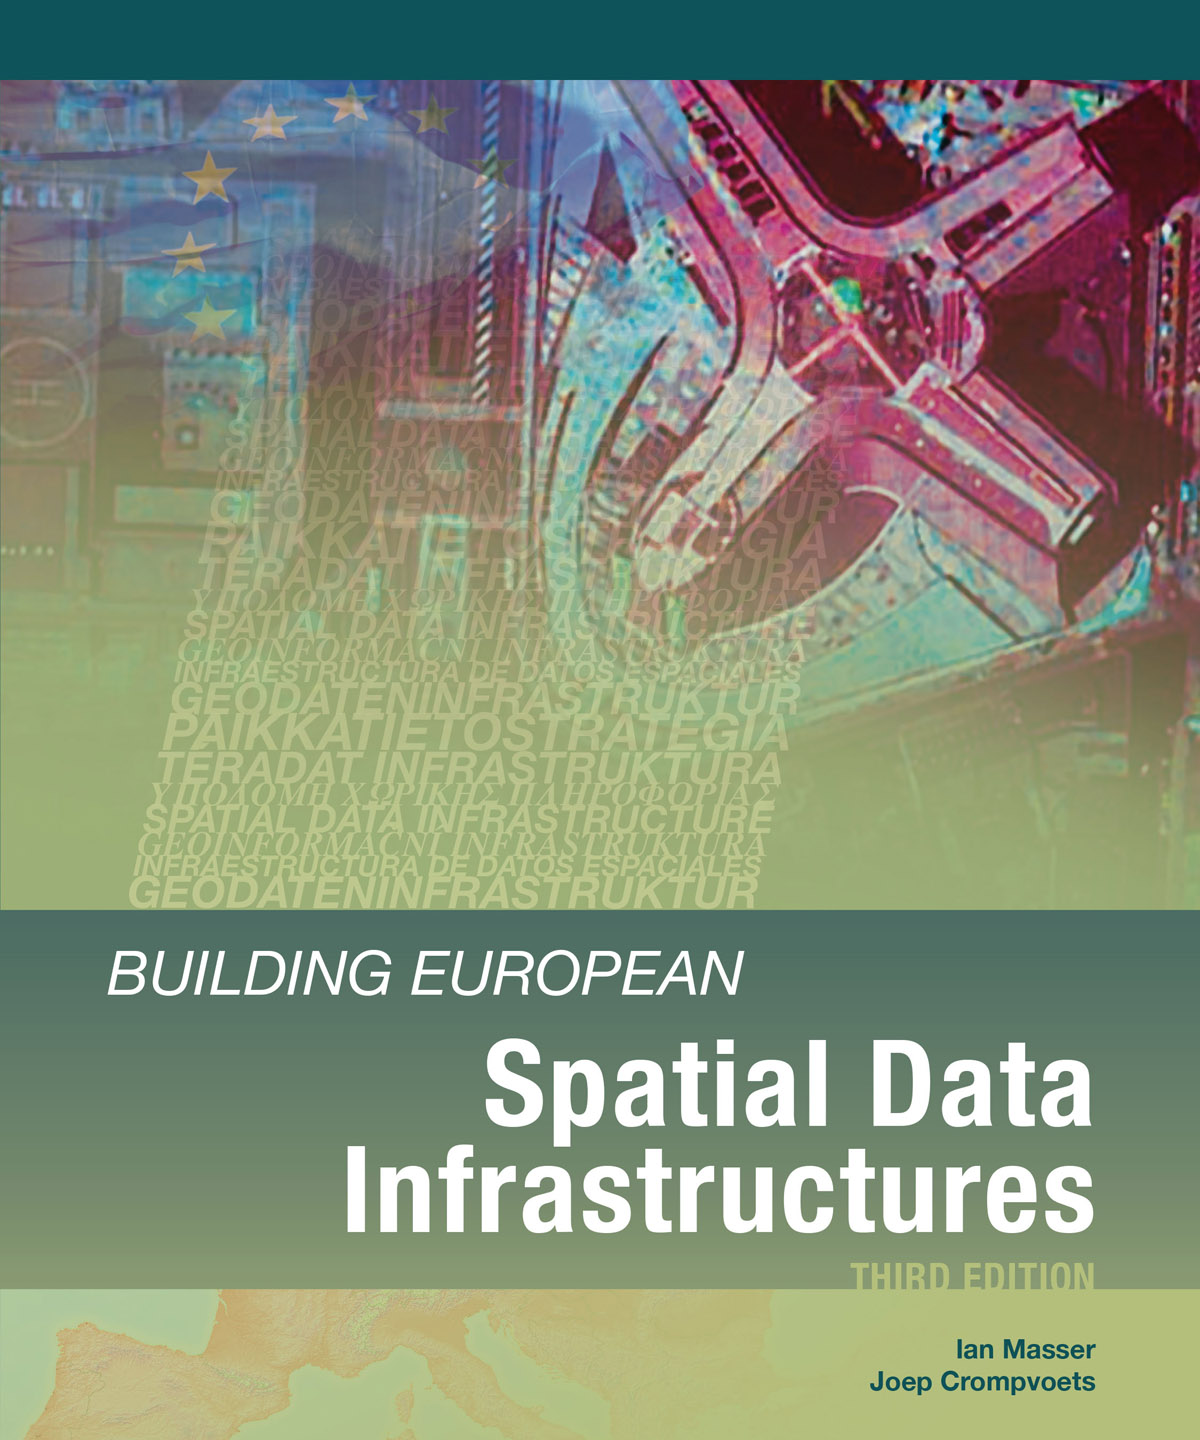 Building European Spatial Data Infrastructures promotes a general understanding of SDI concepts and provides examples of practical applications.